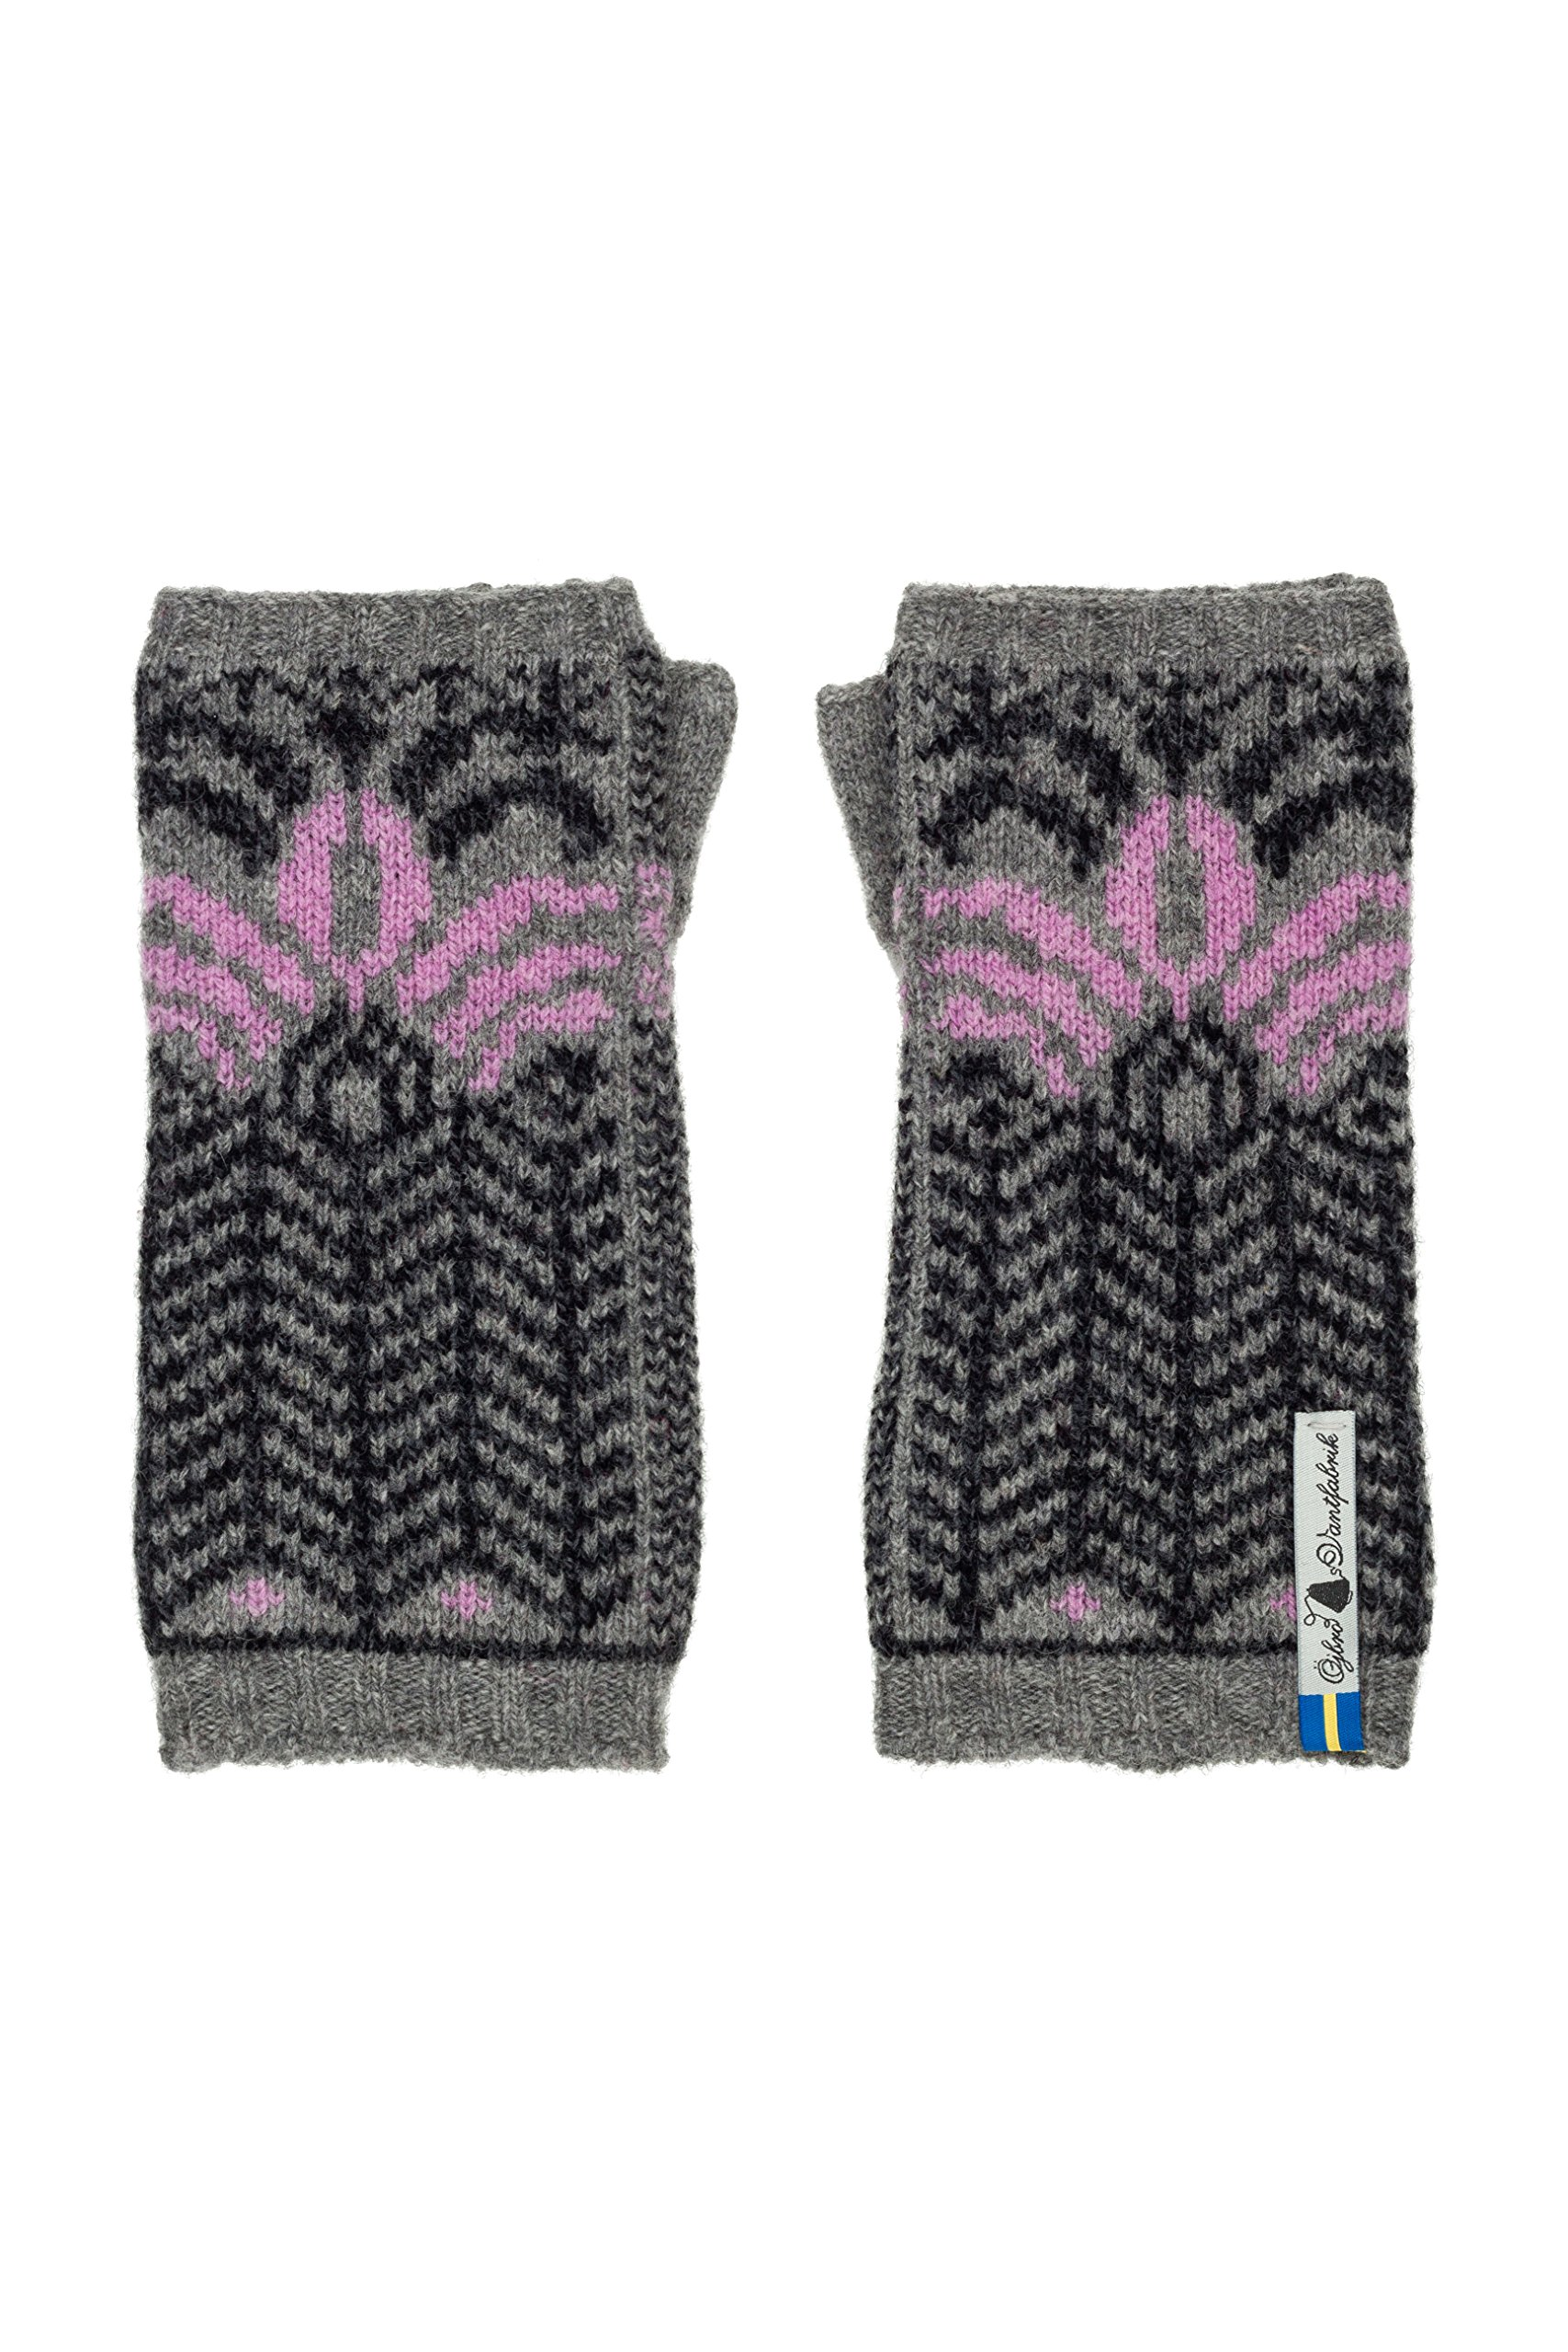 Öjbro Swedish made 100% Merino Wool Soft & Warm Wrist Warmers (as Featured by the Raynauds Assn) (Fager Iris)